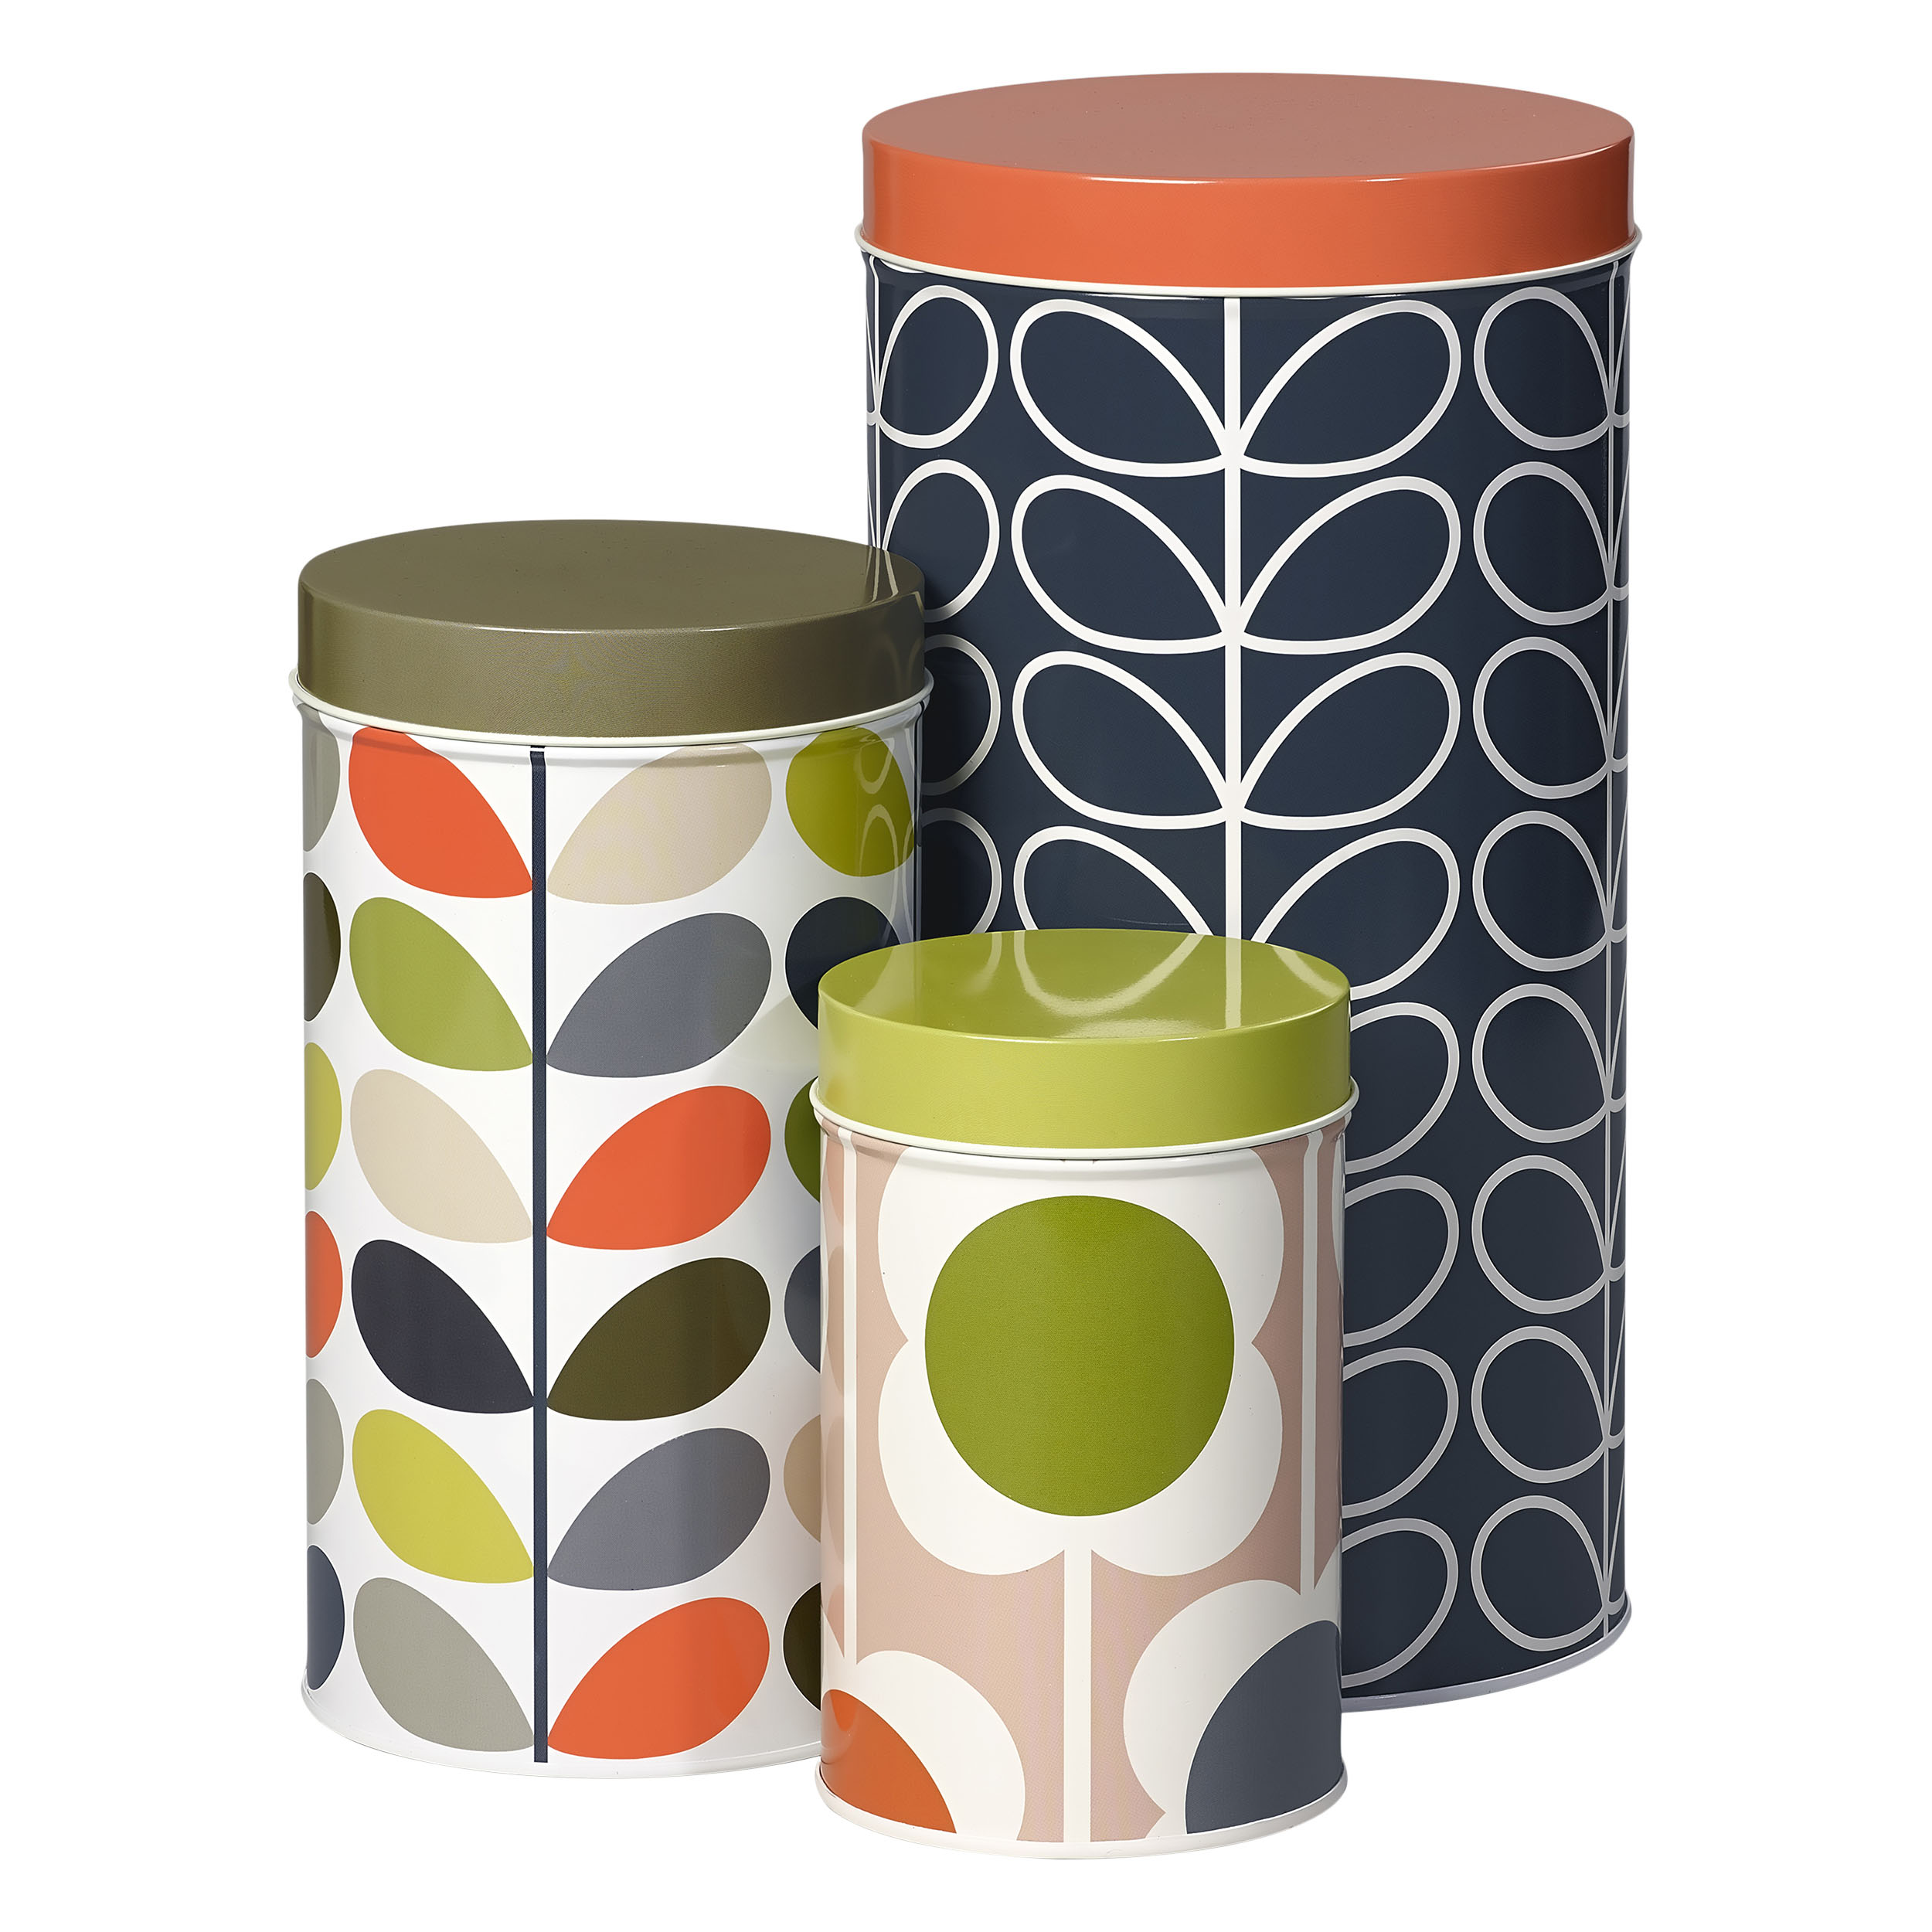 Tin Canisters, Assorted Prints, Set of 3